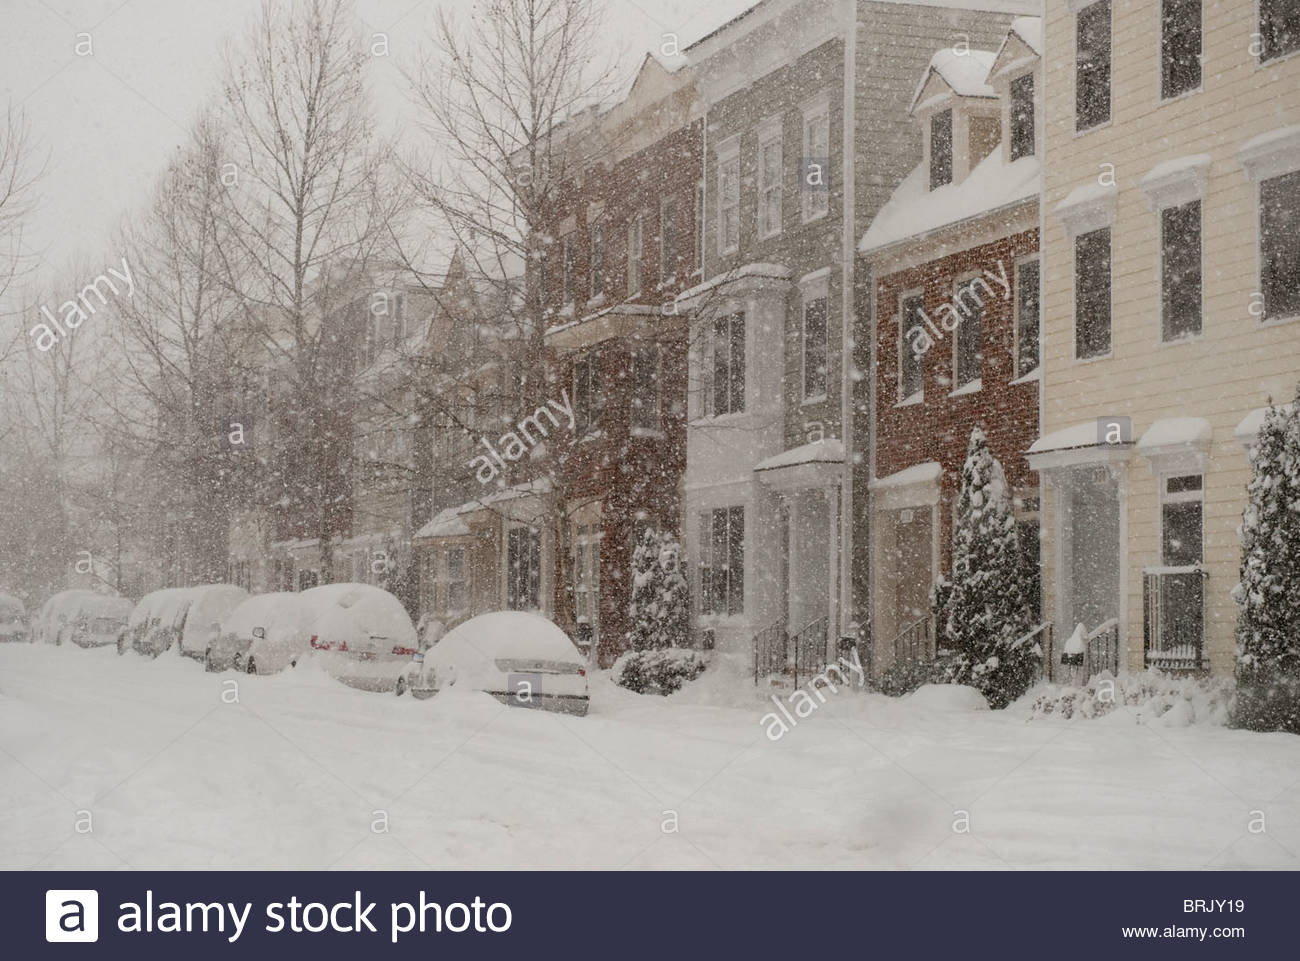 Blizzard of 2009 - 22 inches of snowfall - Stock Image